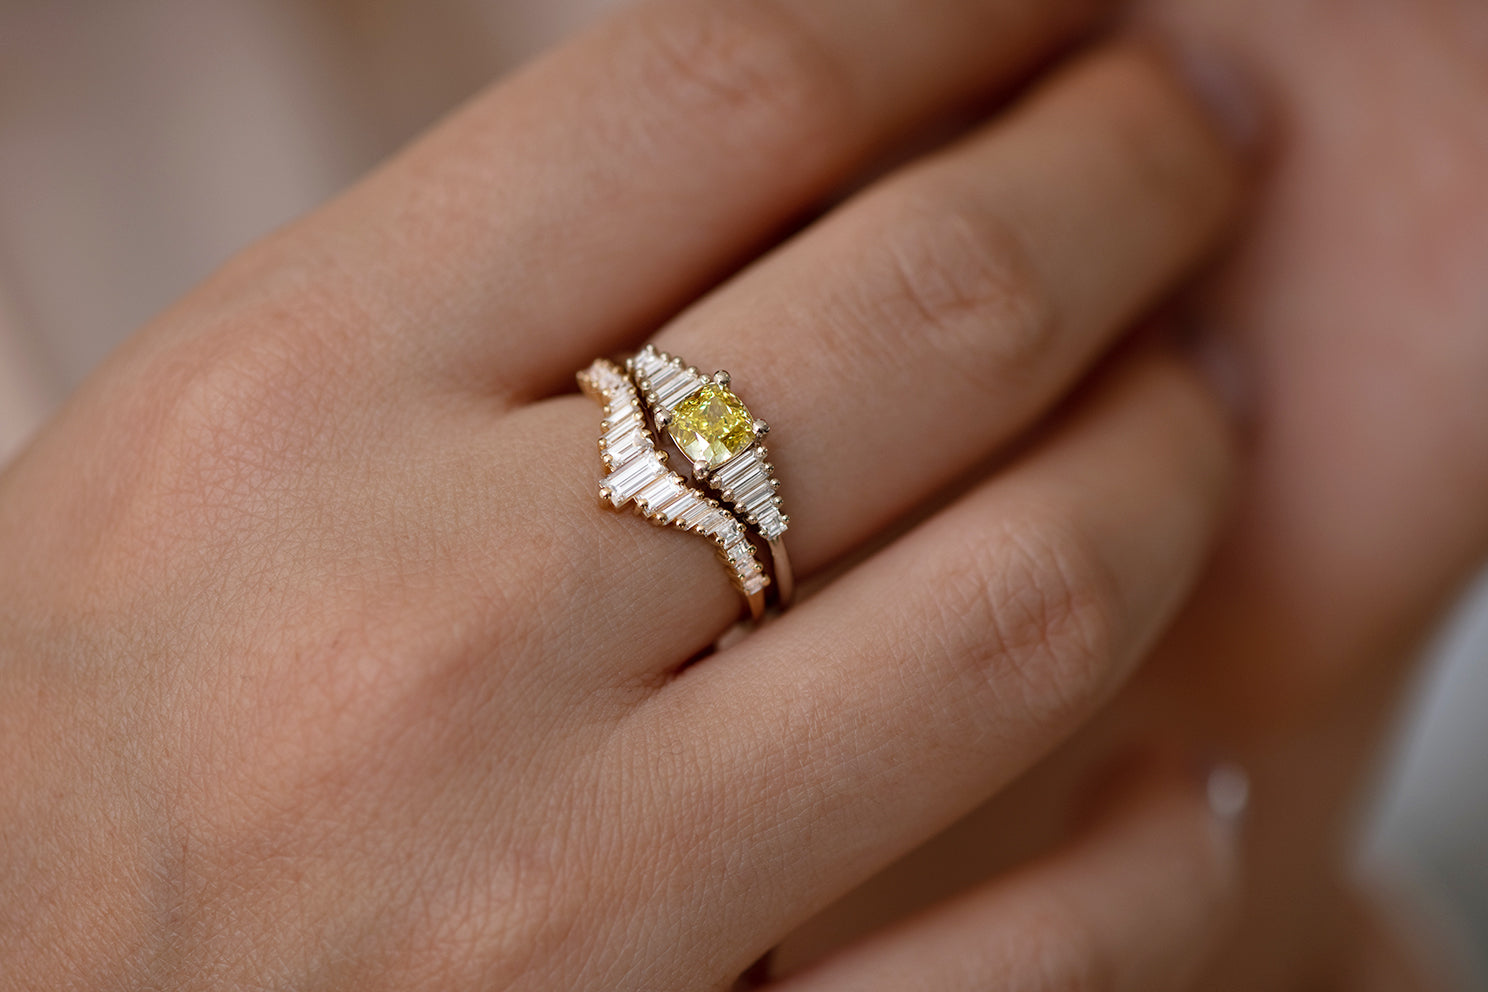 Art Deco Wedding Ring - Tapered Baguette Diamond Ring in Set on hand with Yellow Diamond ring